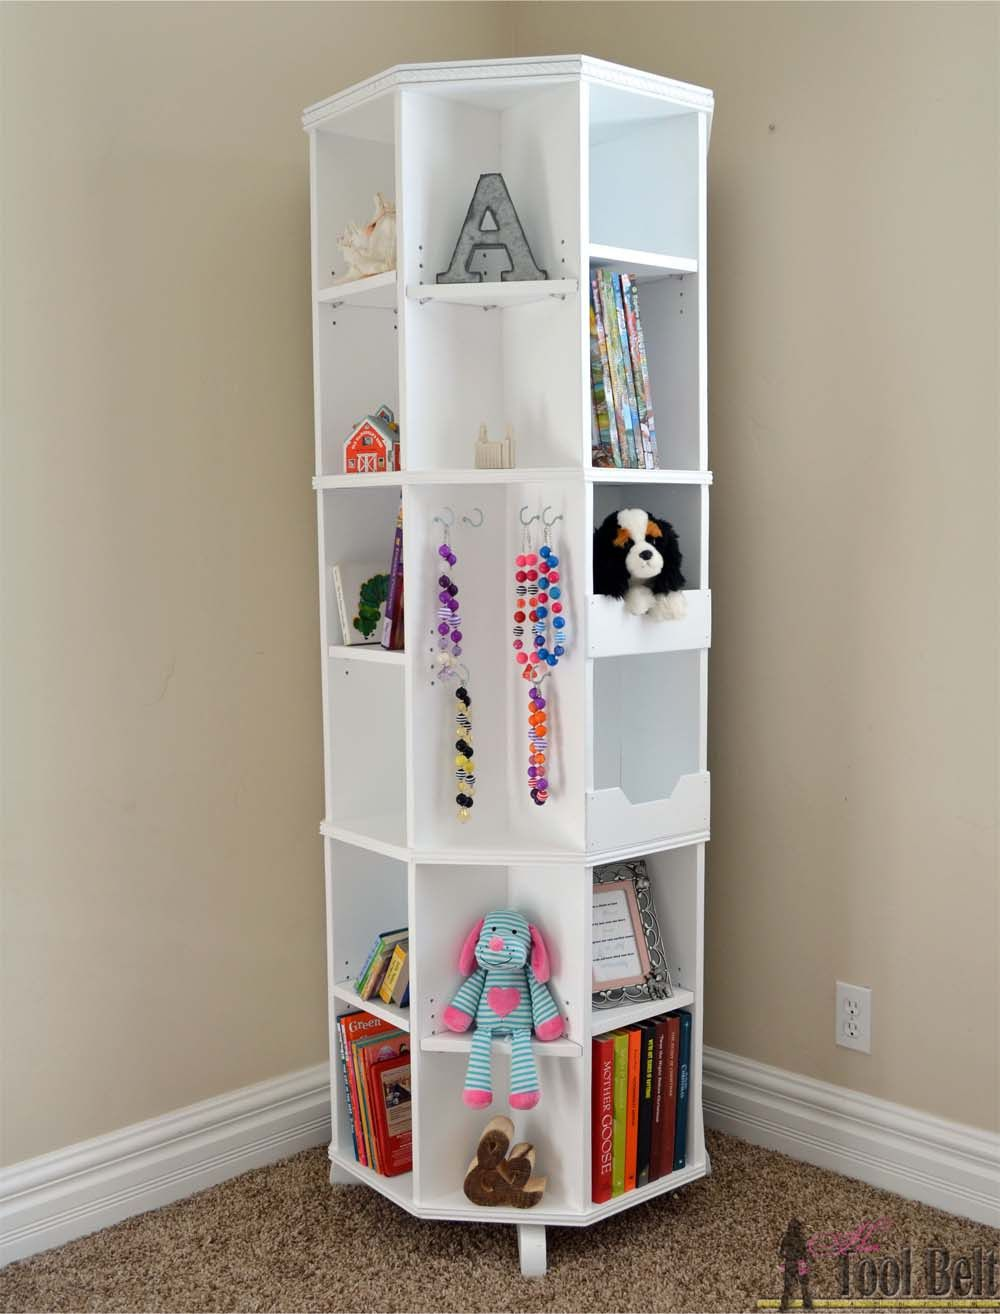 With The Kids Heading Back To School And Getting New Books Supplies An Octagon Rotating Bookshelf Is A Perfect Space Saving Storage Solution